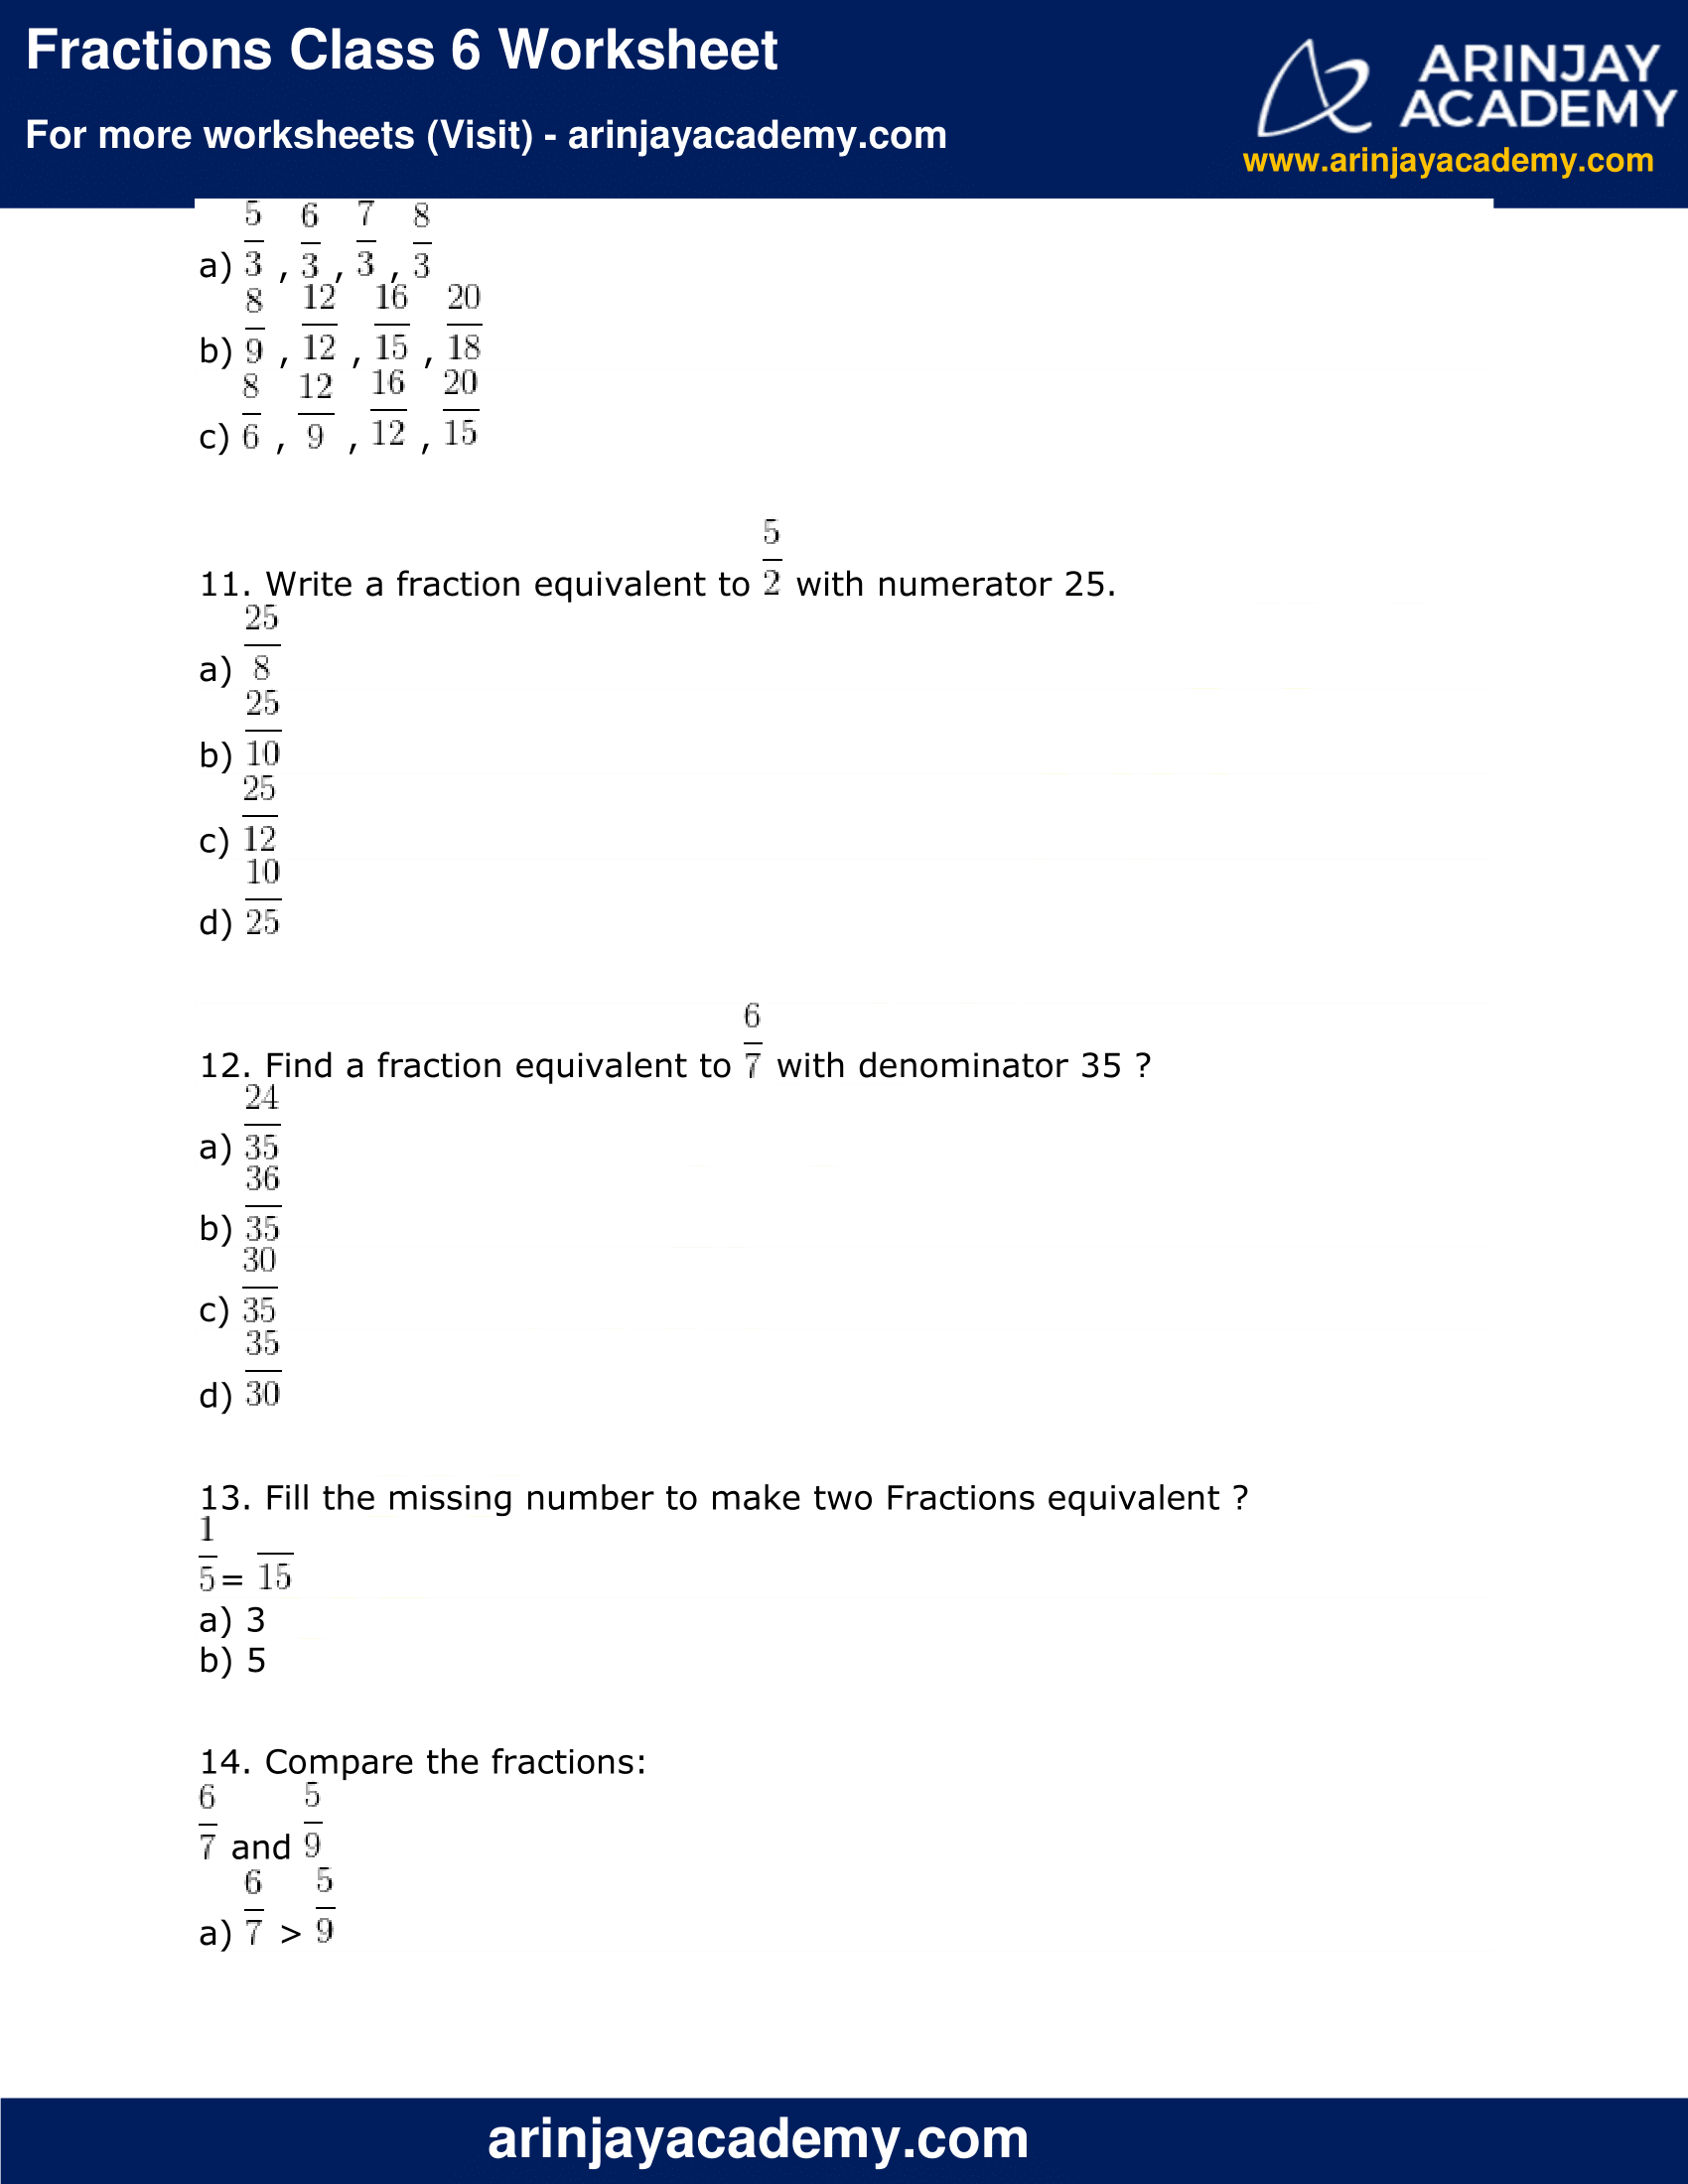 Fractions Class 6 Worksheet image 3